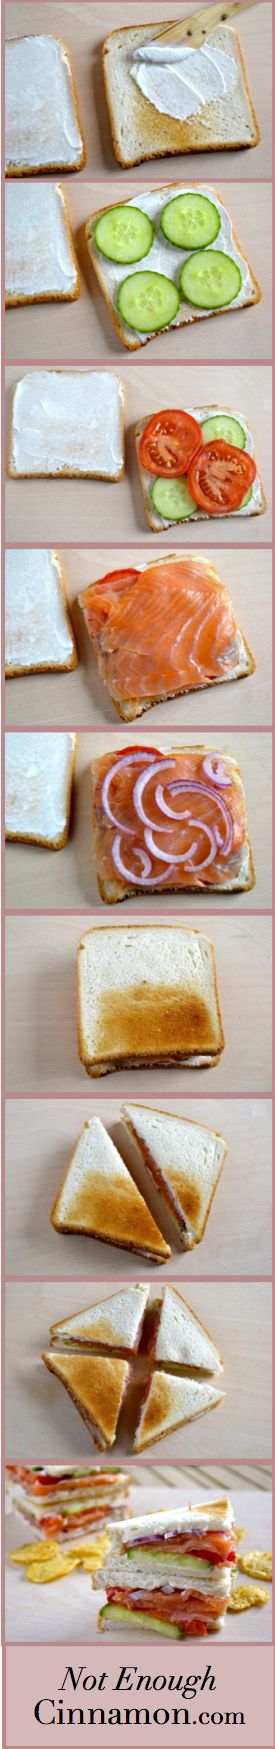 Smoked Salmon Club Sandwich: philadelphia, concombre, tomate, onion rouge